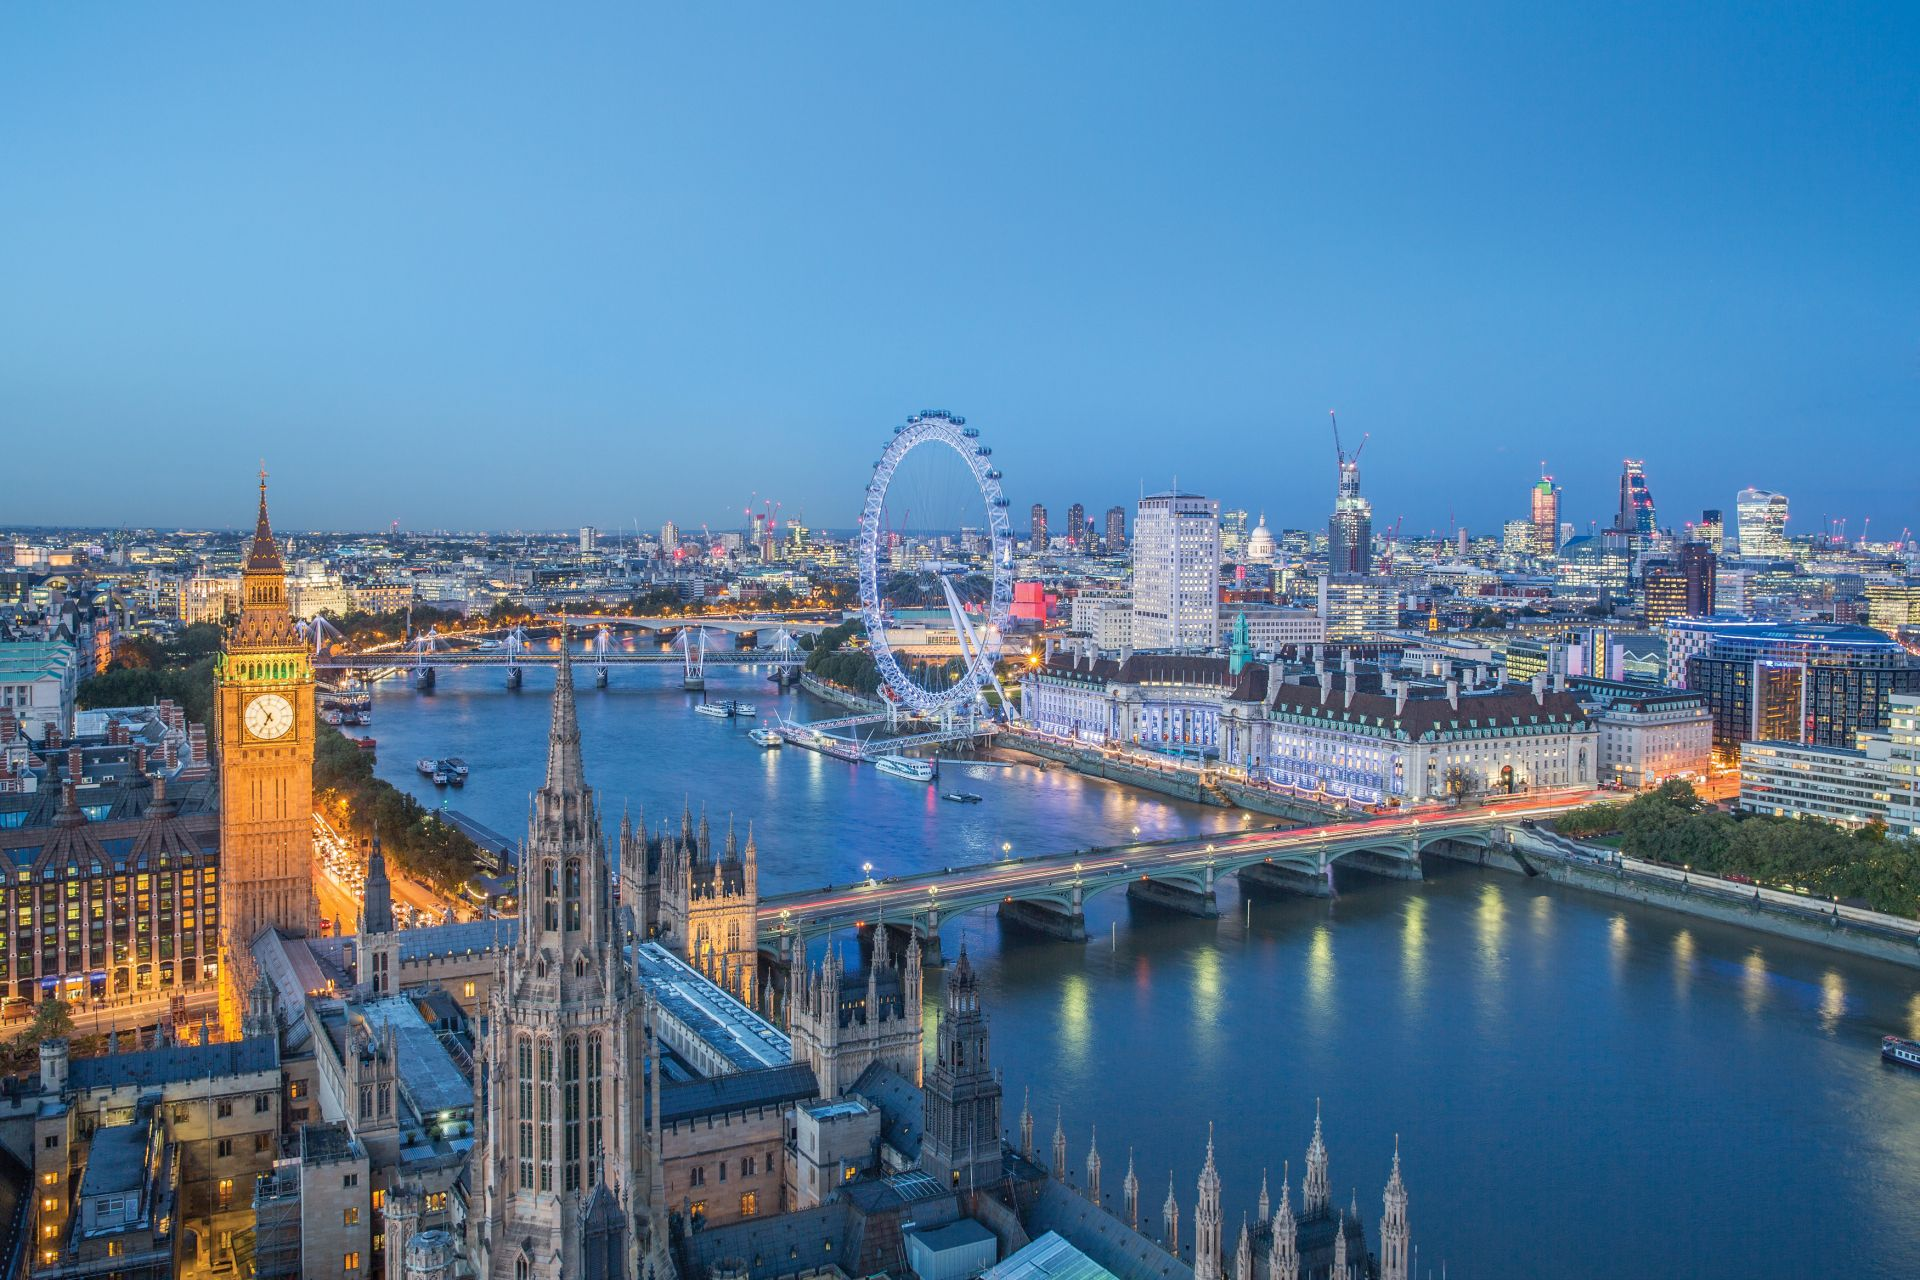 London skyline with Big ben and the London Eye at dusk. Photo Credit: © Julian Love/Visit London Images.